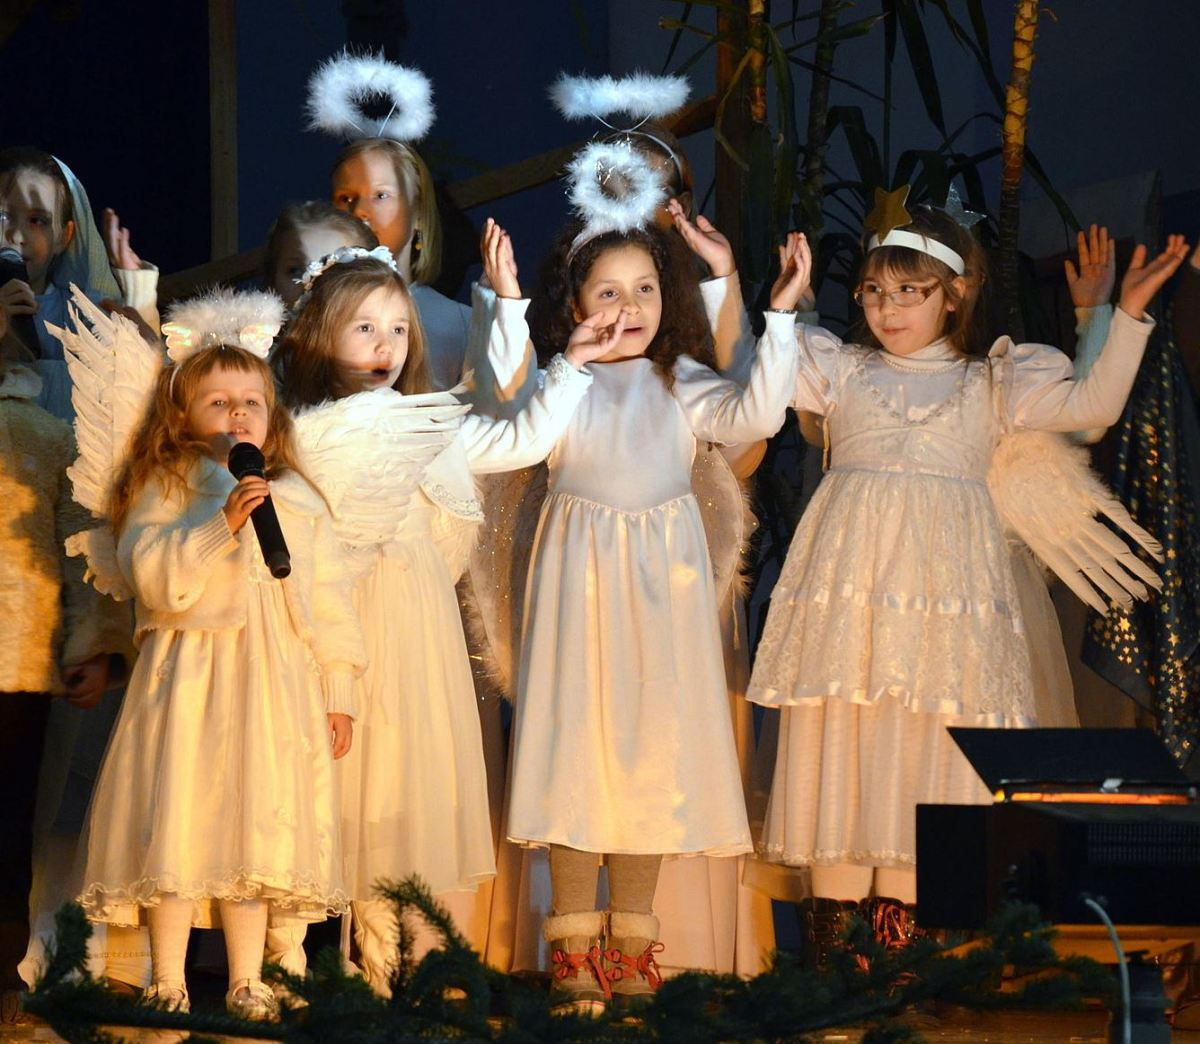 Children with halo's at Christmas nativity play